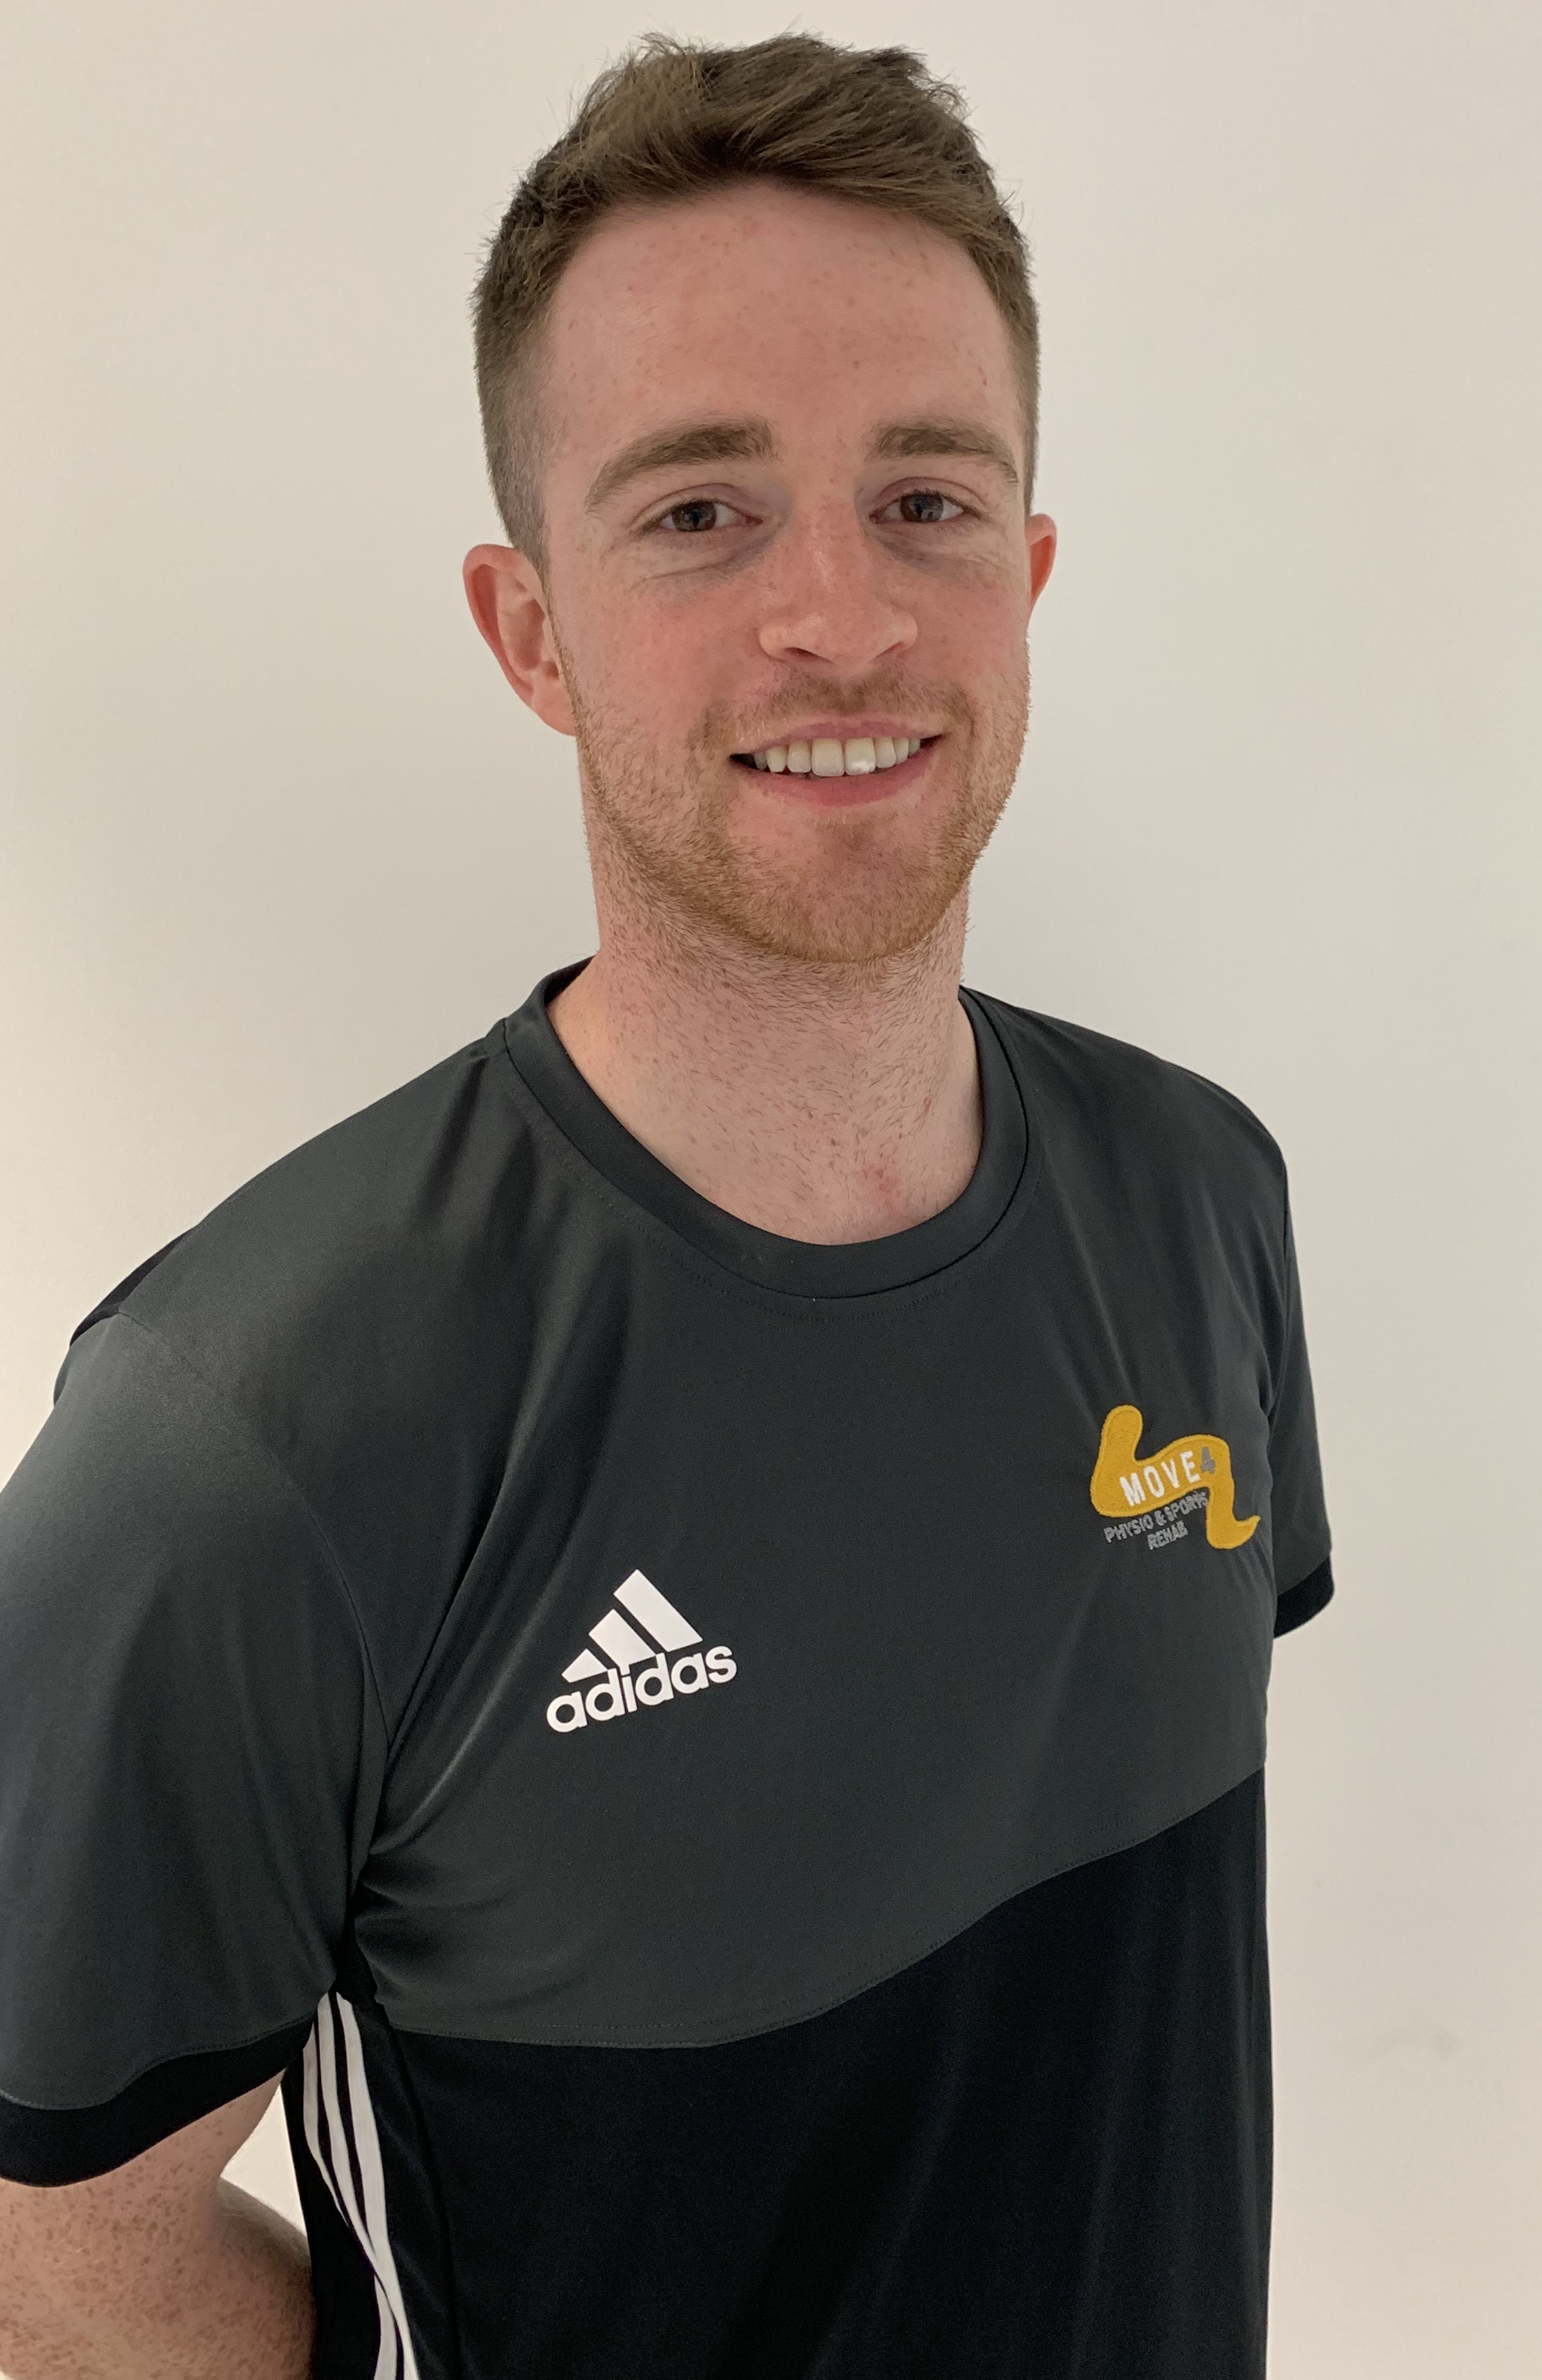 Calvin Kernohan - BSc (Hons) MCSPAcademy Physiotherapist at Northampton Saints RFCPhysiotherapist for St Enda's GAC Hurling, Camogie and Gaelic footballGraduate in physiotherapy - Ulster University